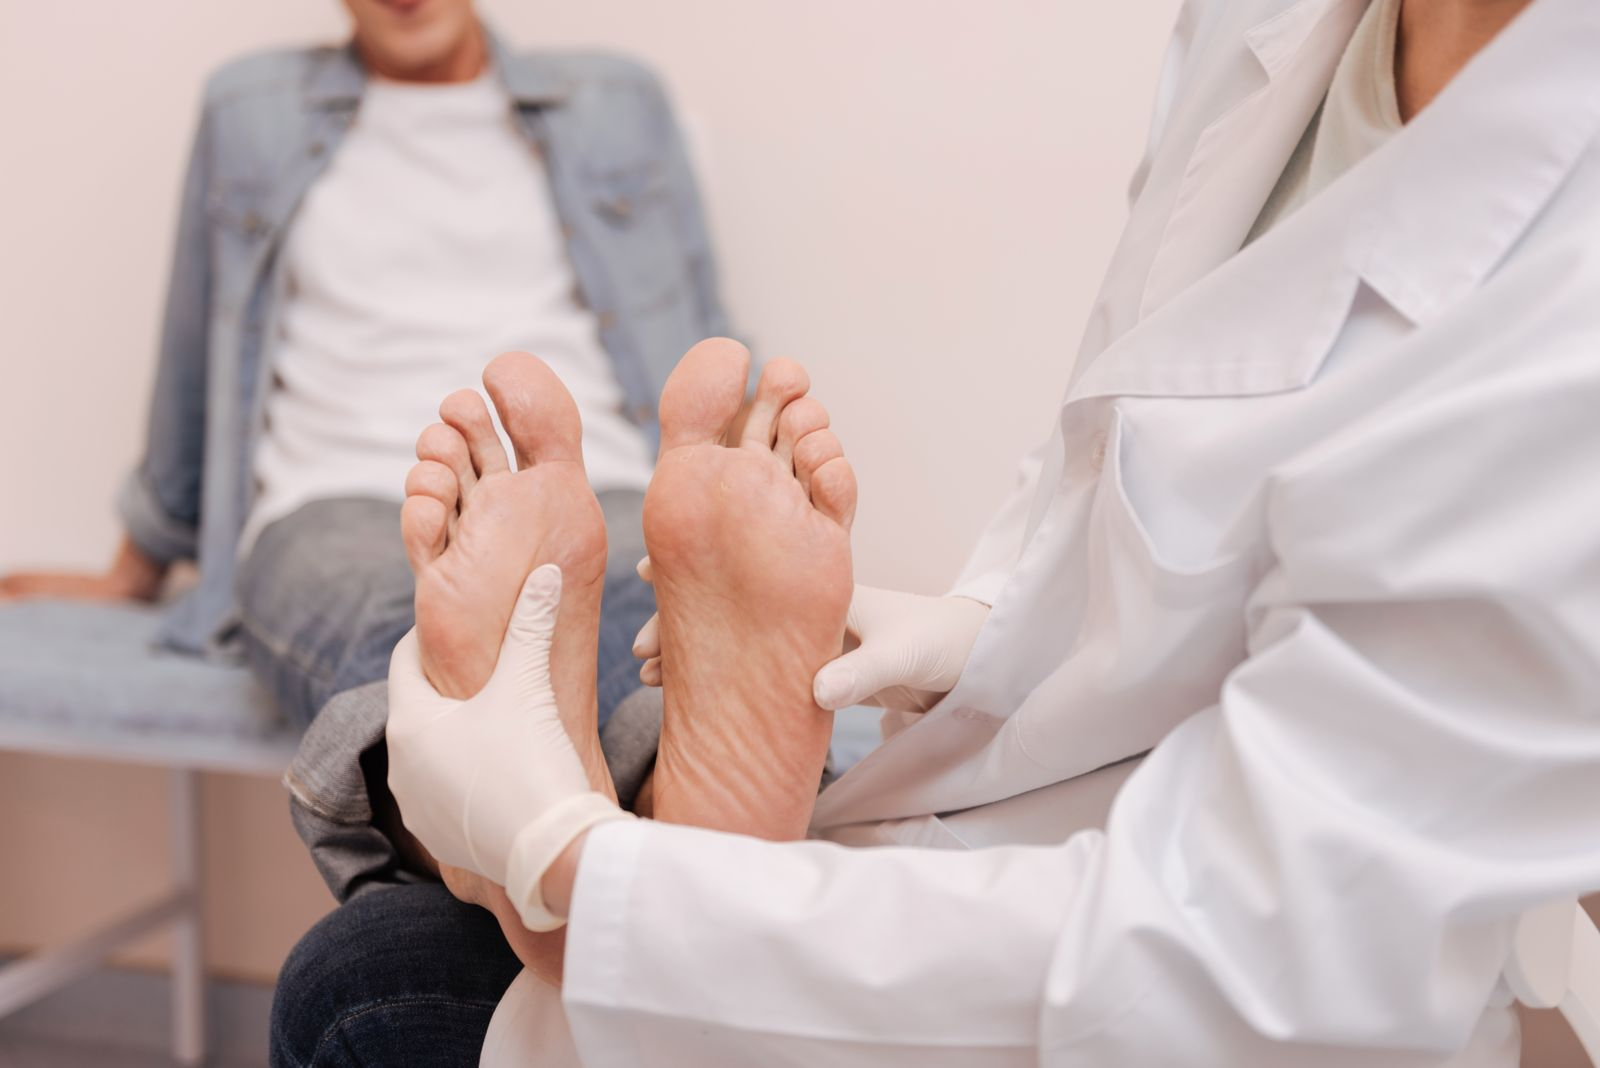 Doctor examining feet of patient